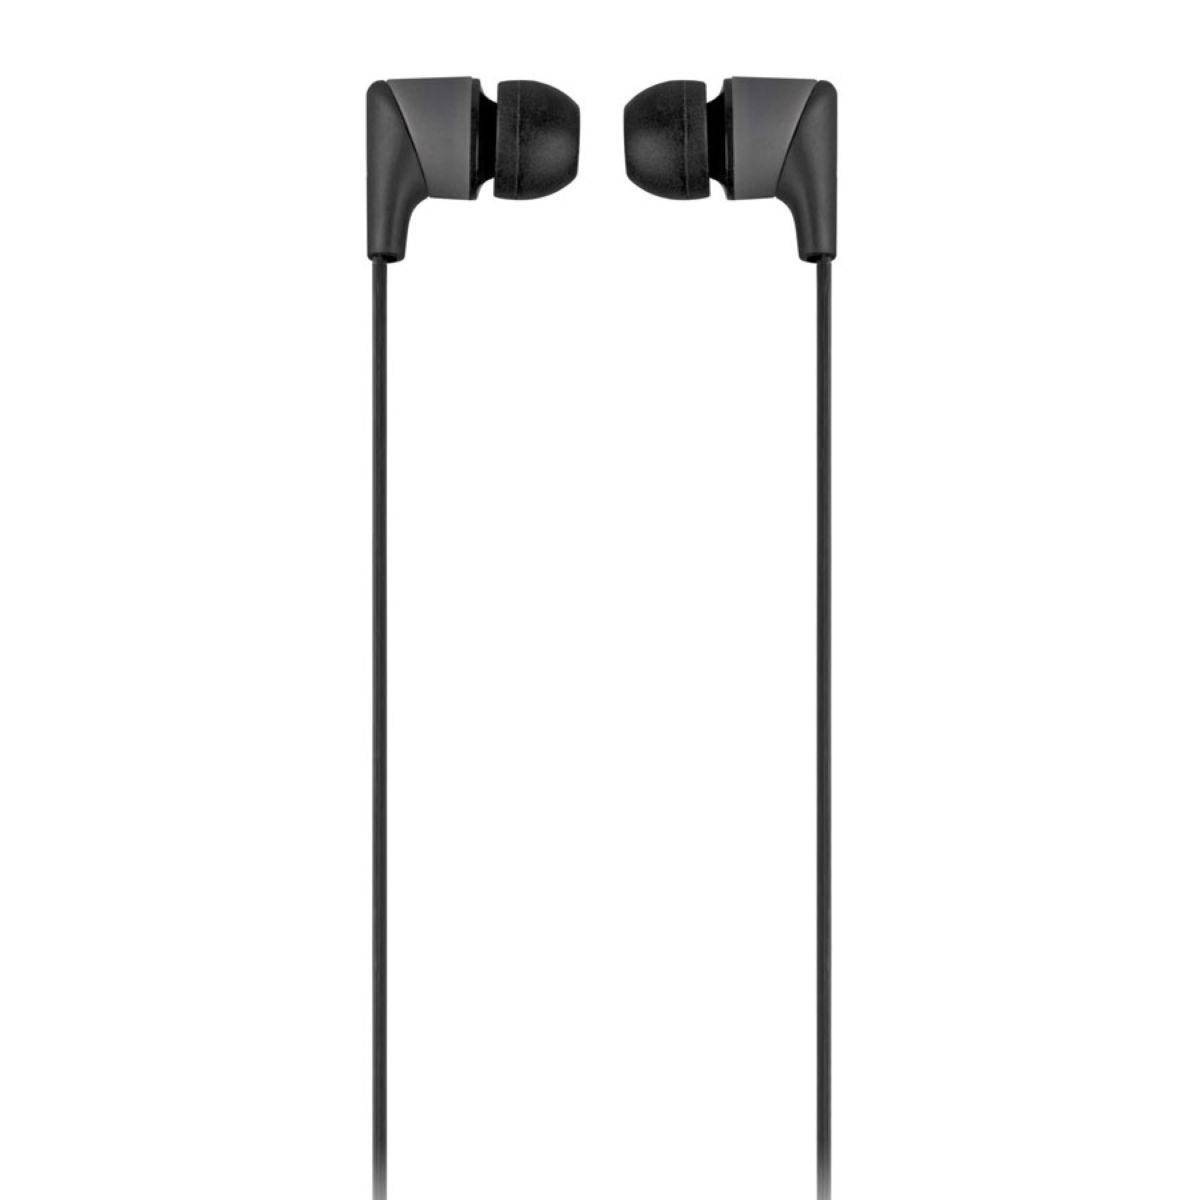 Kitsound Bounce Bluetooth In-Ear Headphones – Black